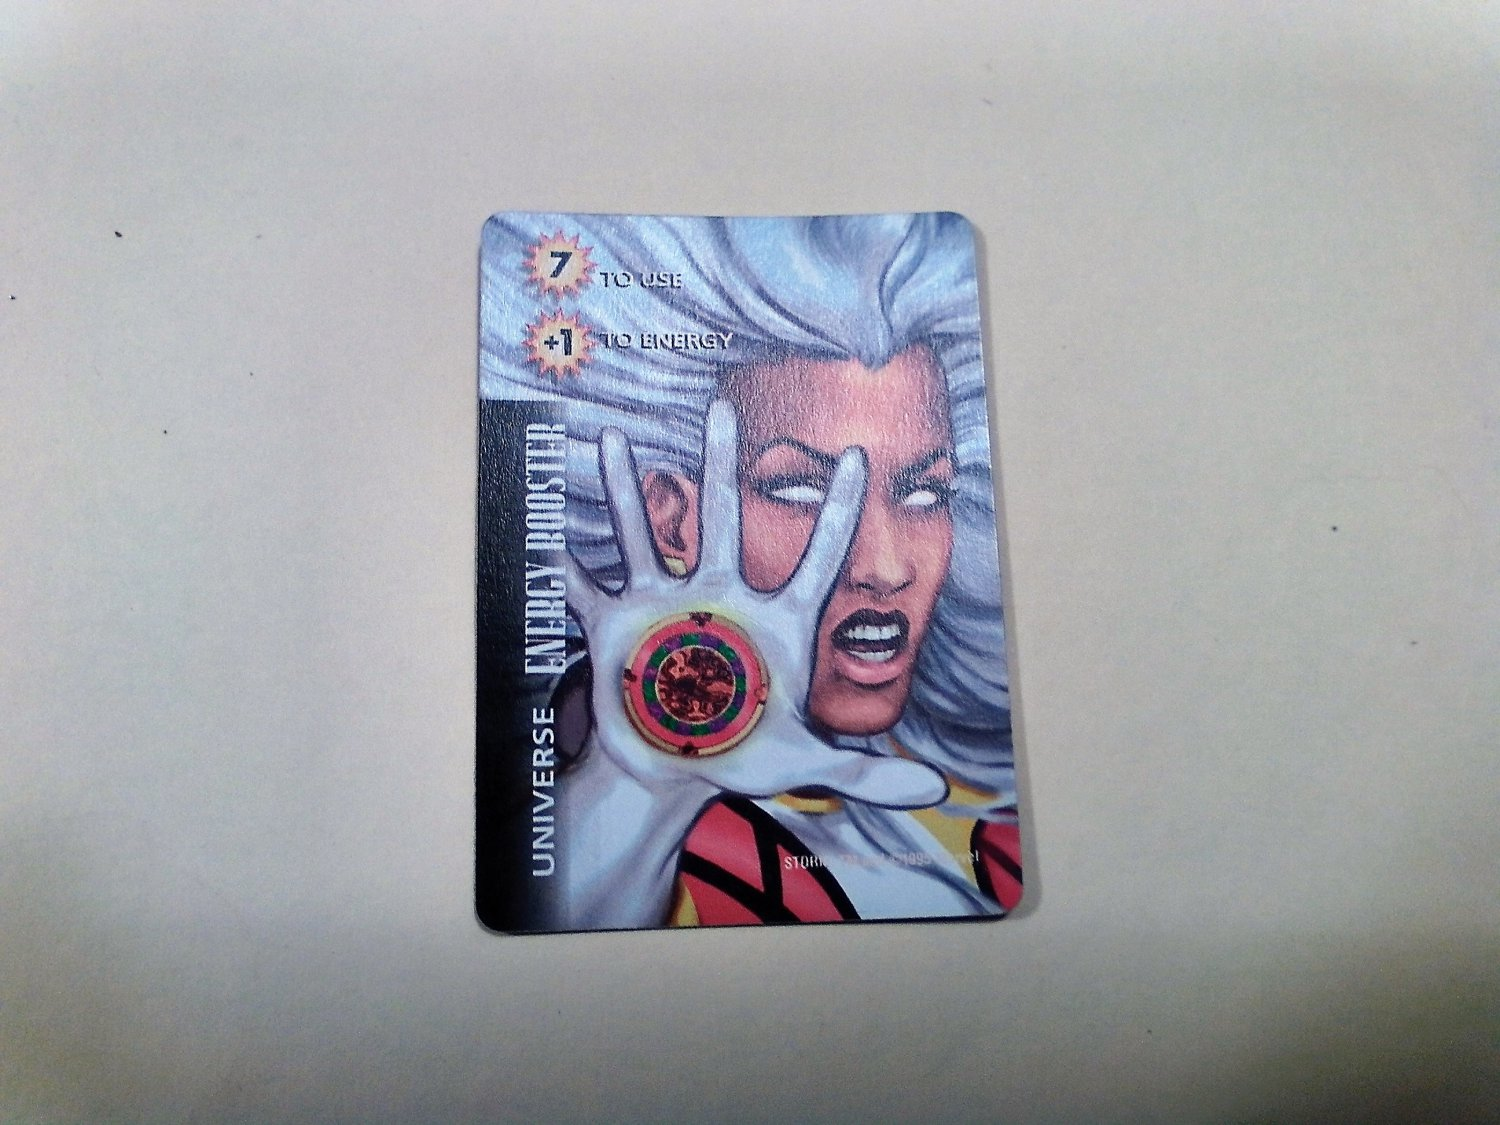 Marvel OverPower - Storm Energy Booster No. 313 Common, Universe Card (1995) Fleer